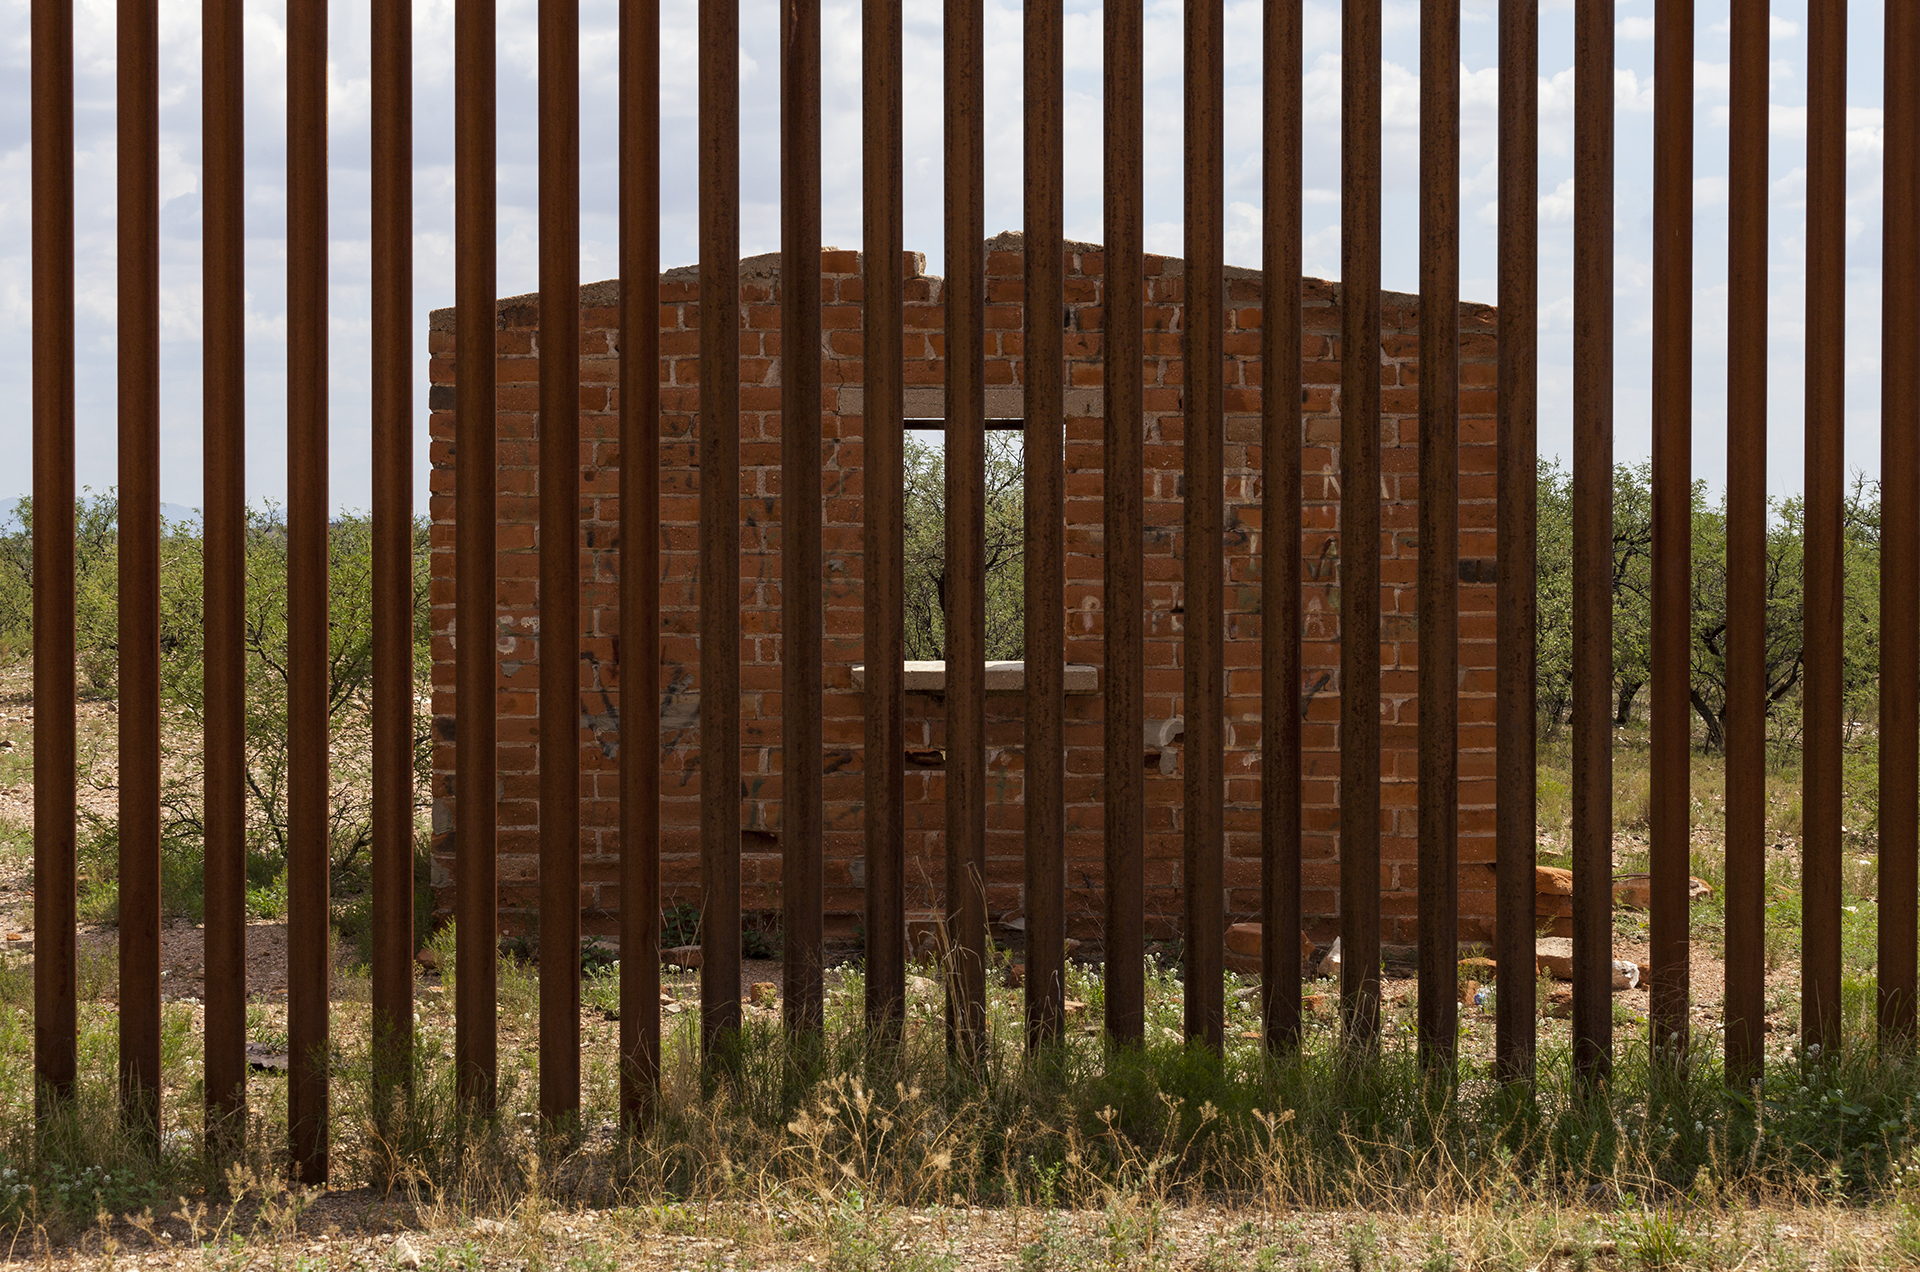 Looking into Mexico Through the Border Fence, 2012